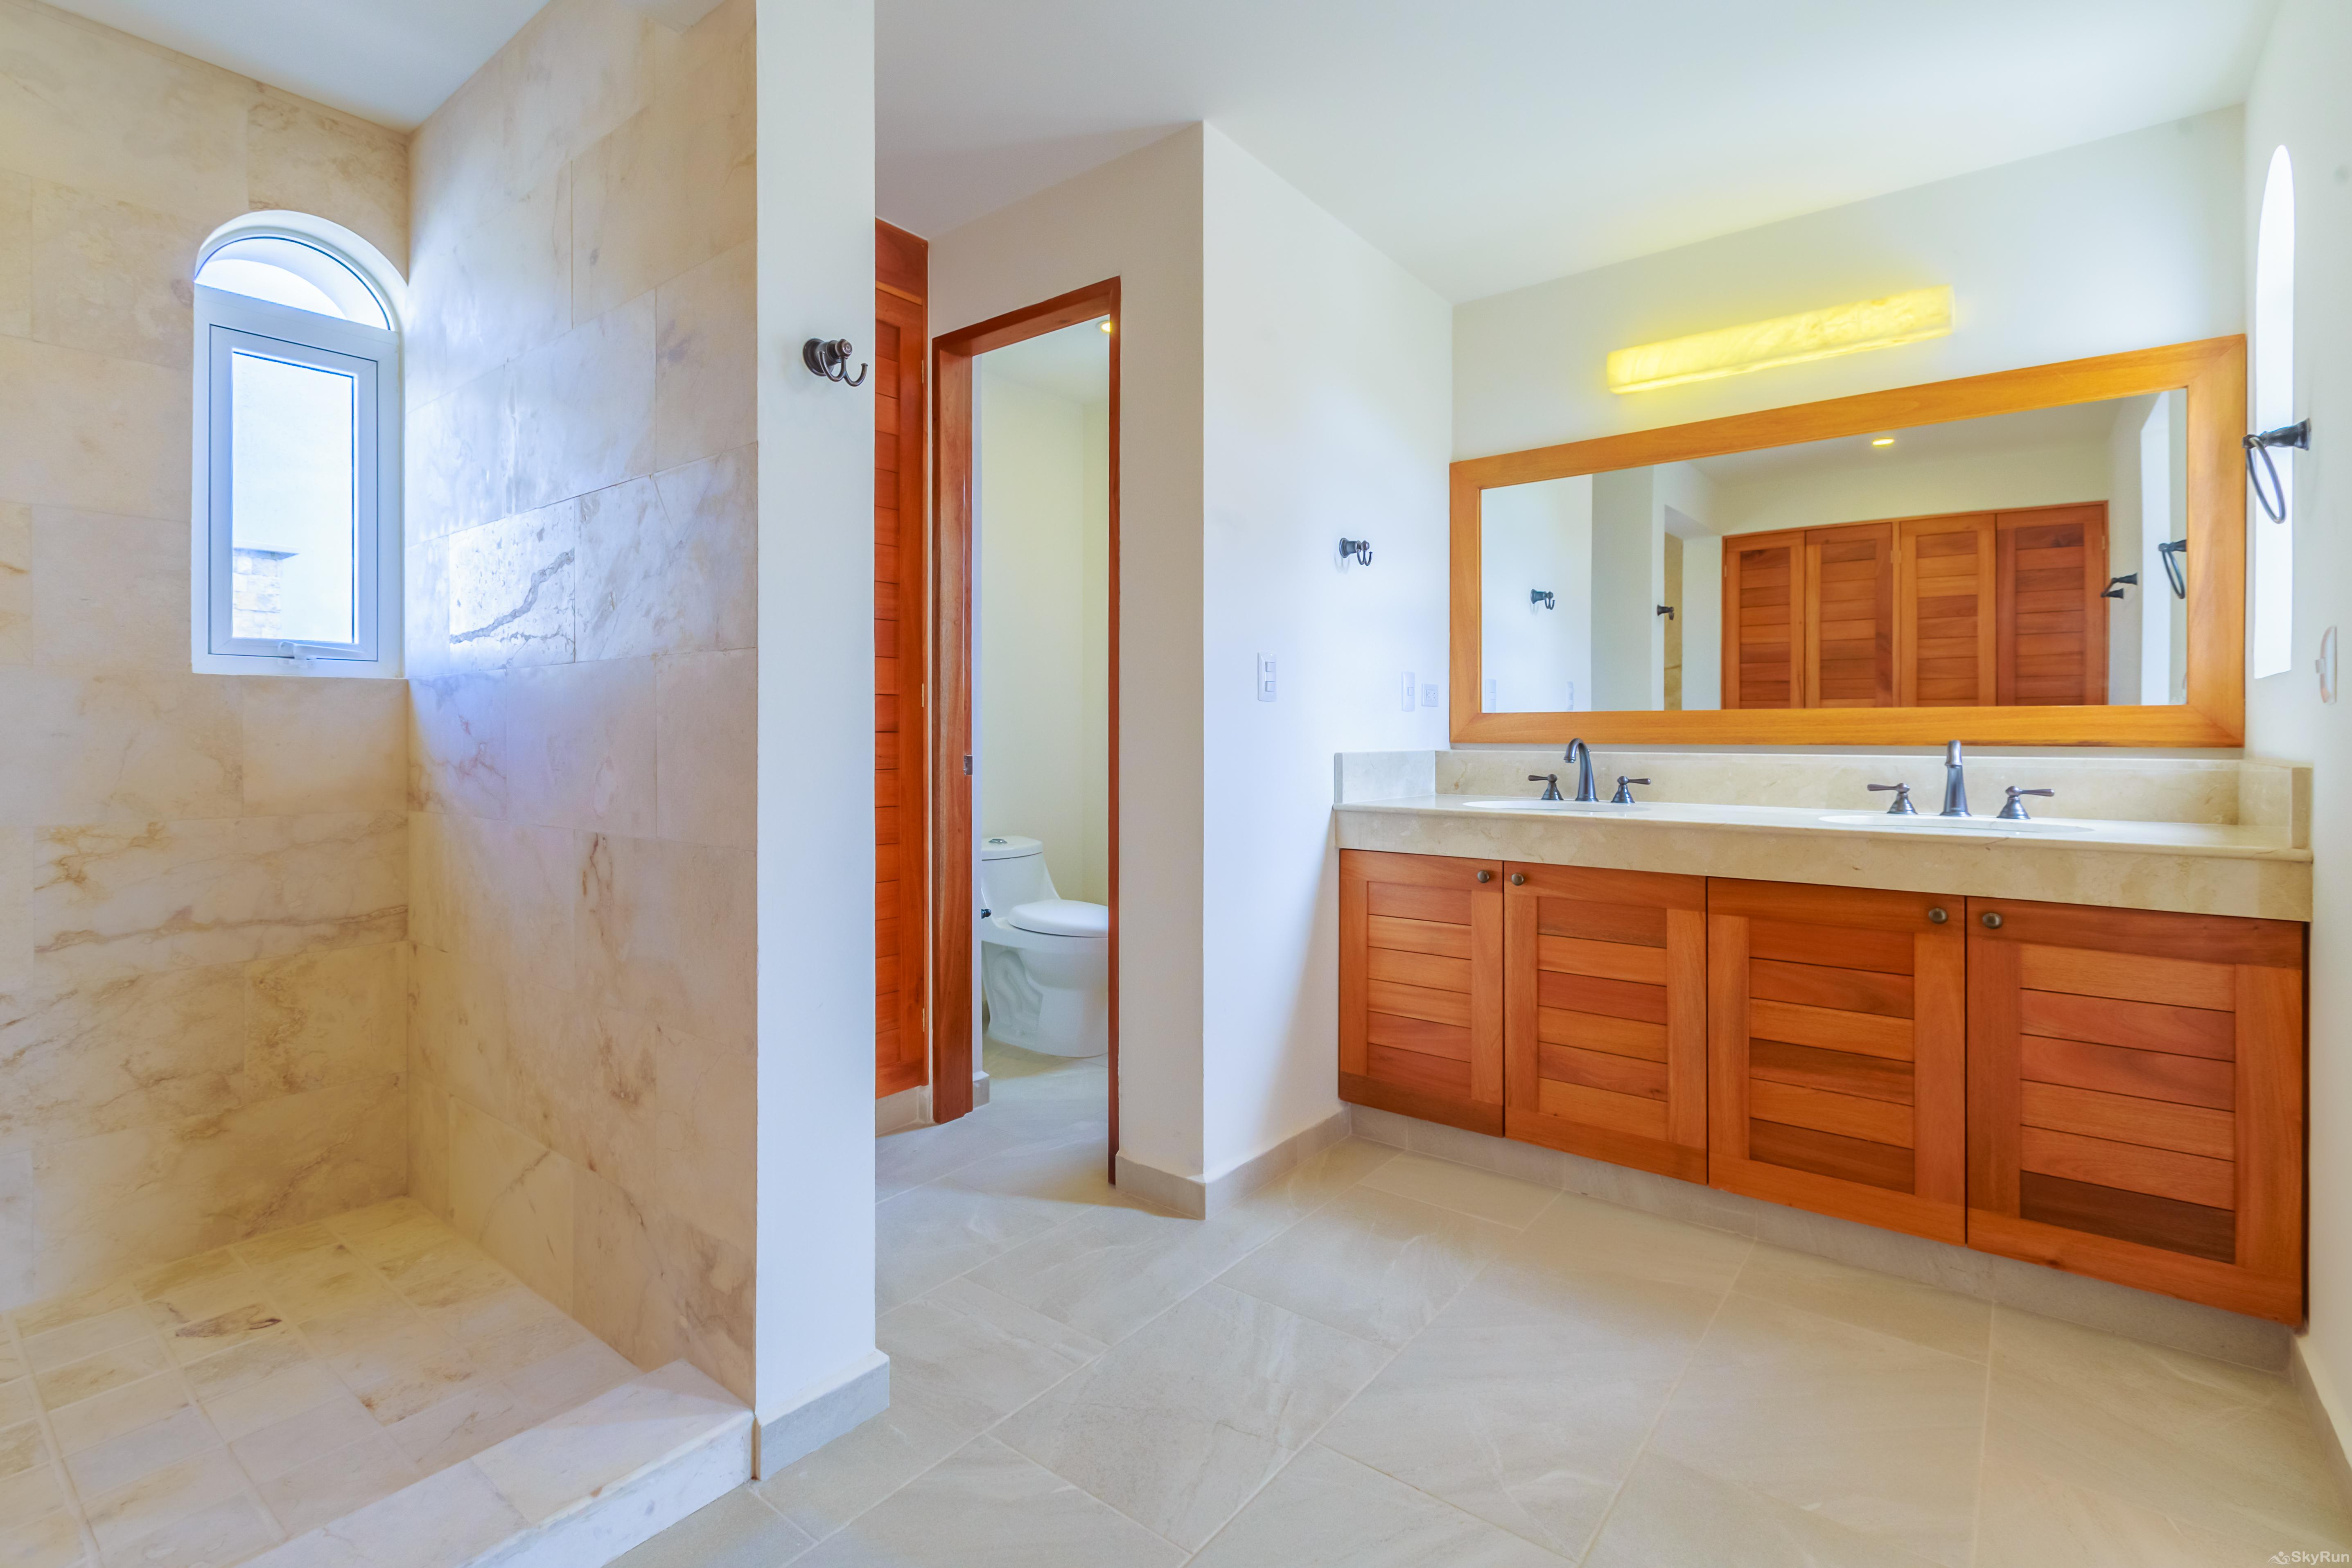 Casa Isla Bella Isla Mujeres private bathroom for master bedrooms